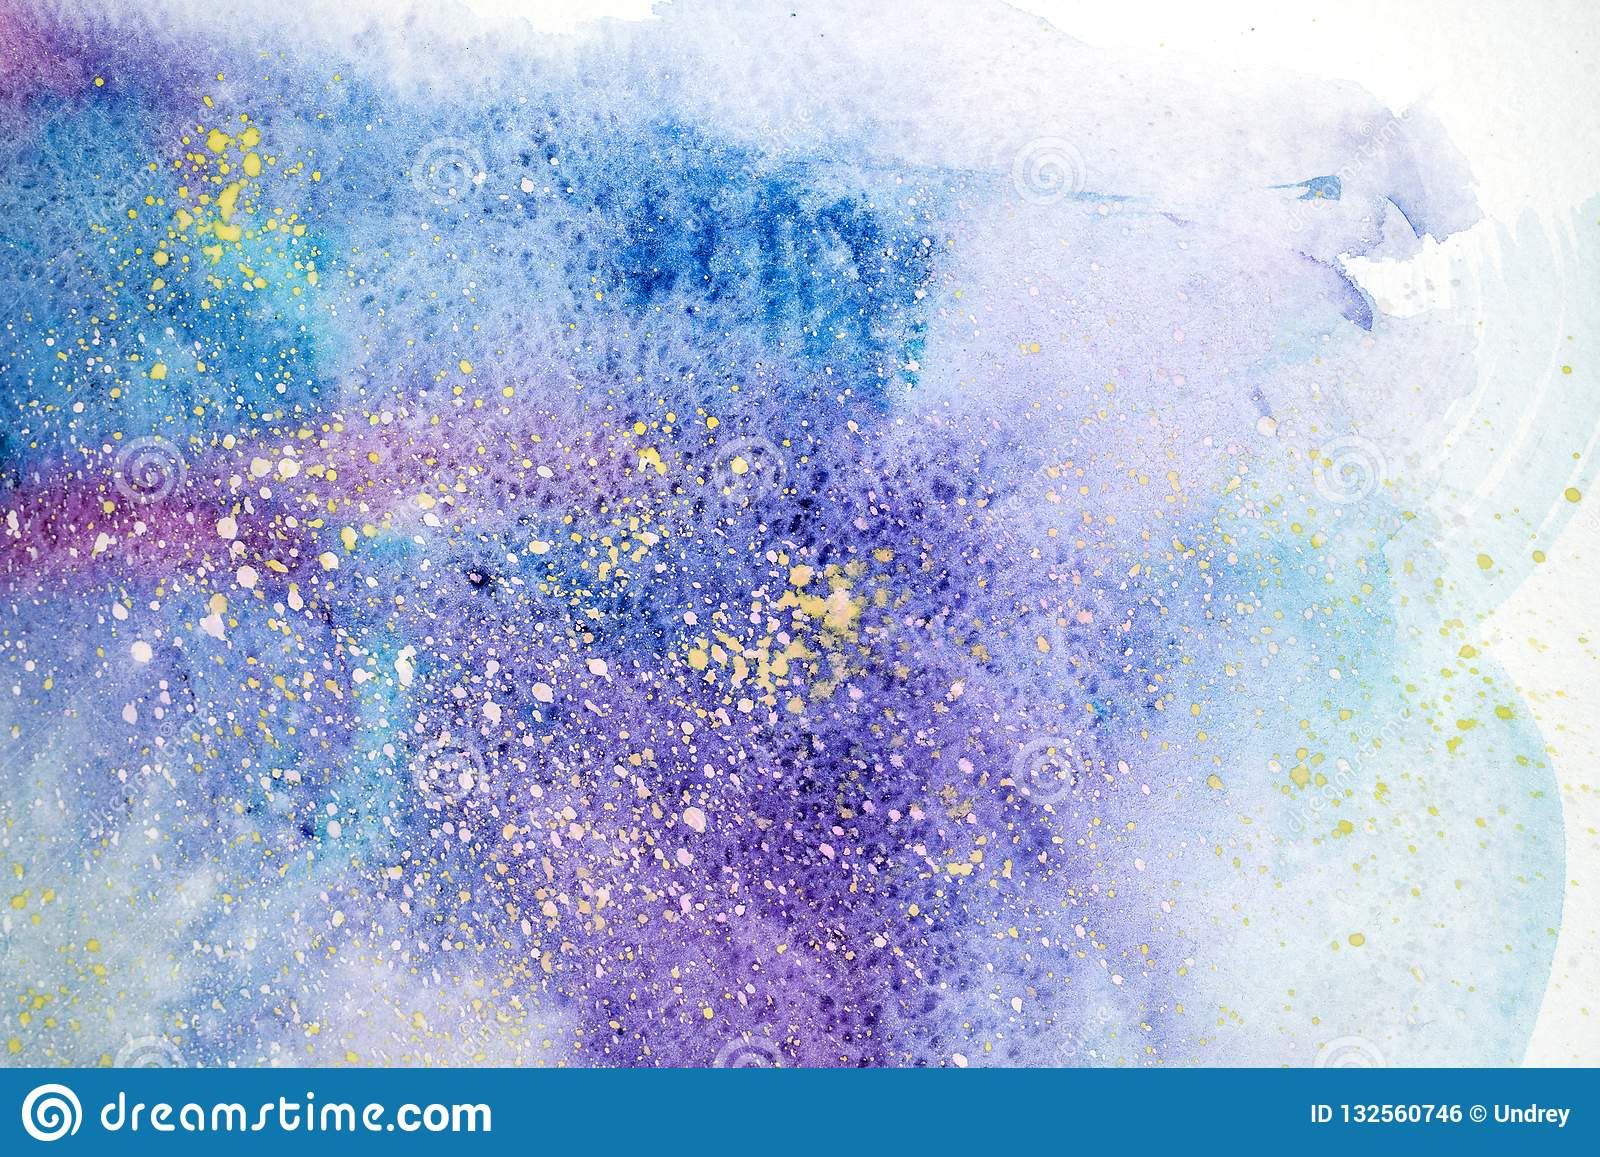 Watercolor abstract painting. Water color drawing. Watercolour blots texture background.